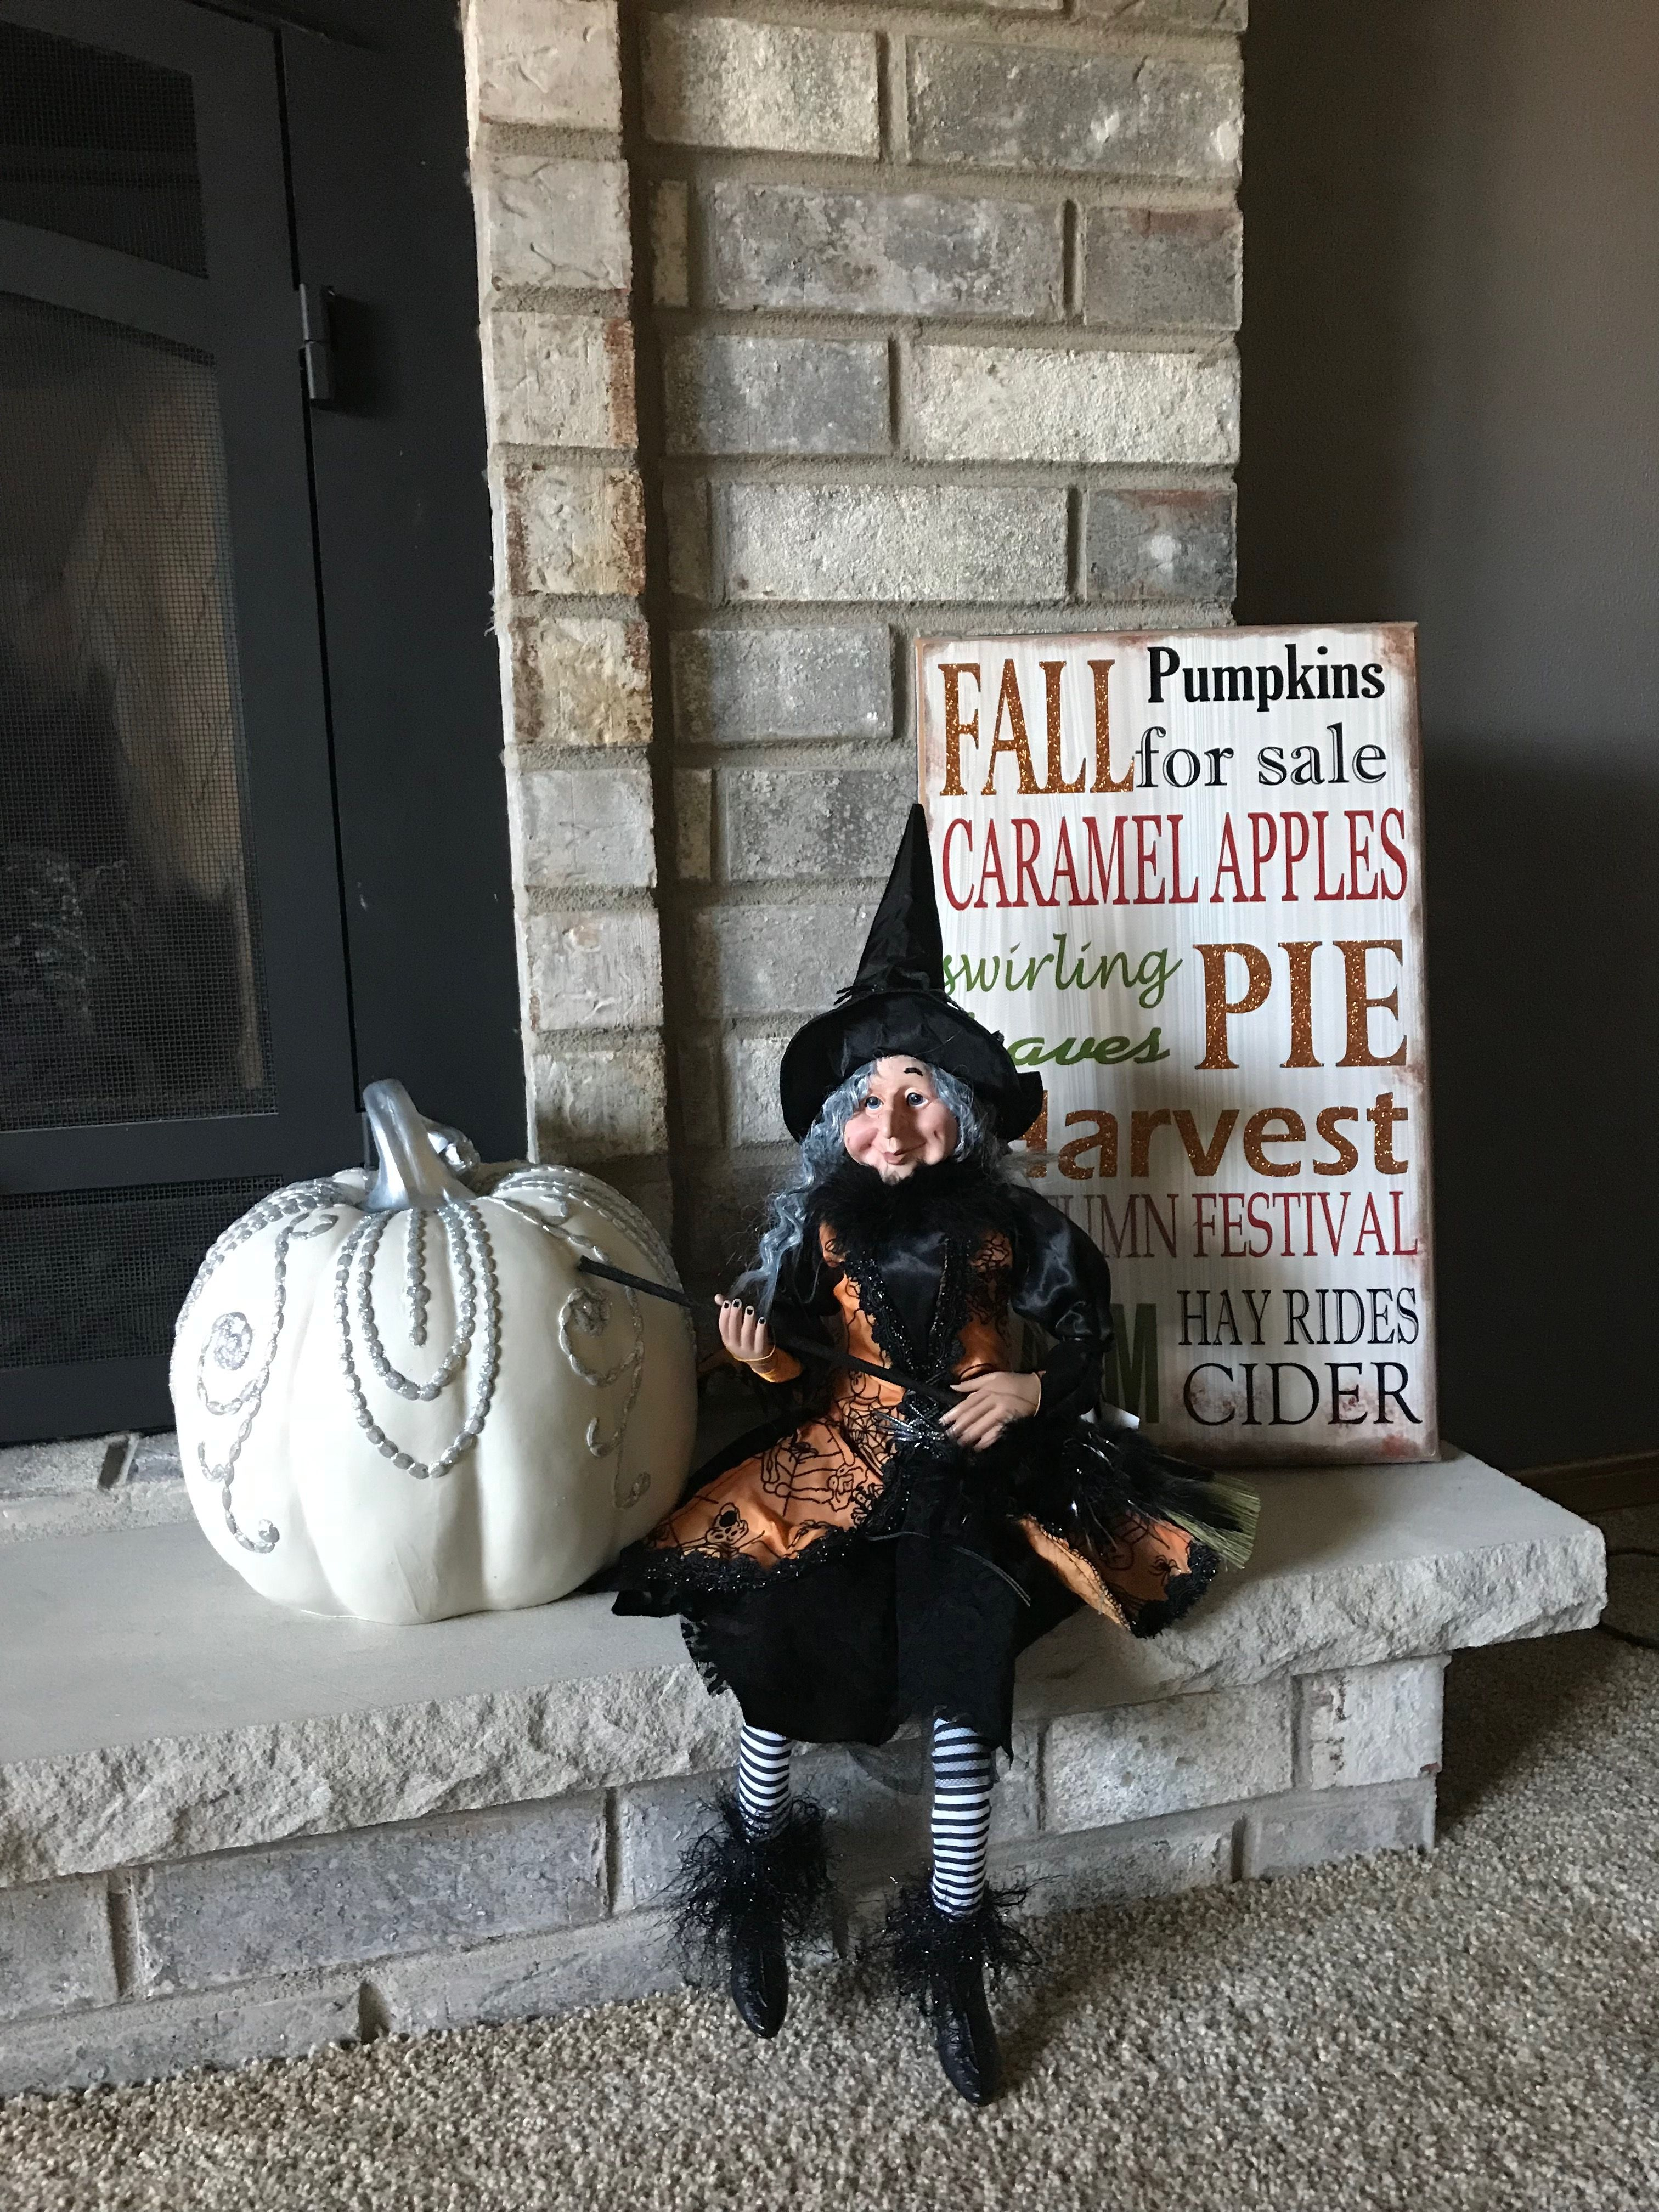 Pin by Peggy Severson on Fall in love with fall Fall